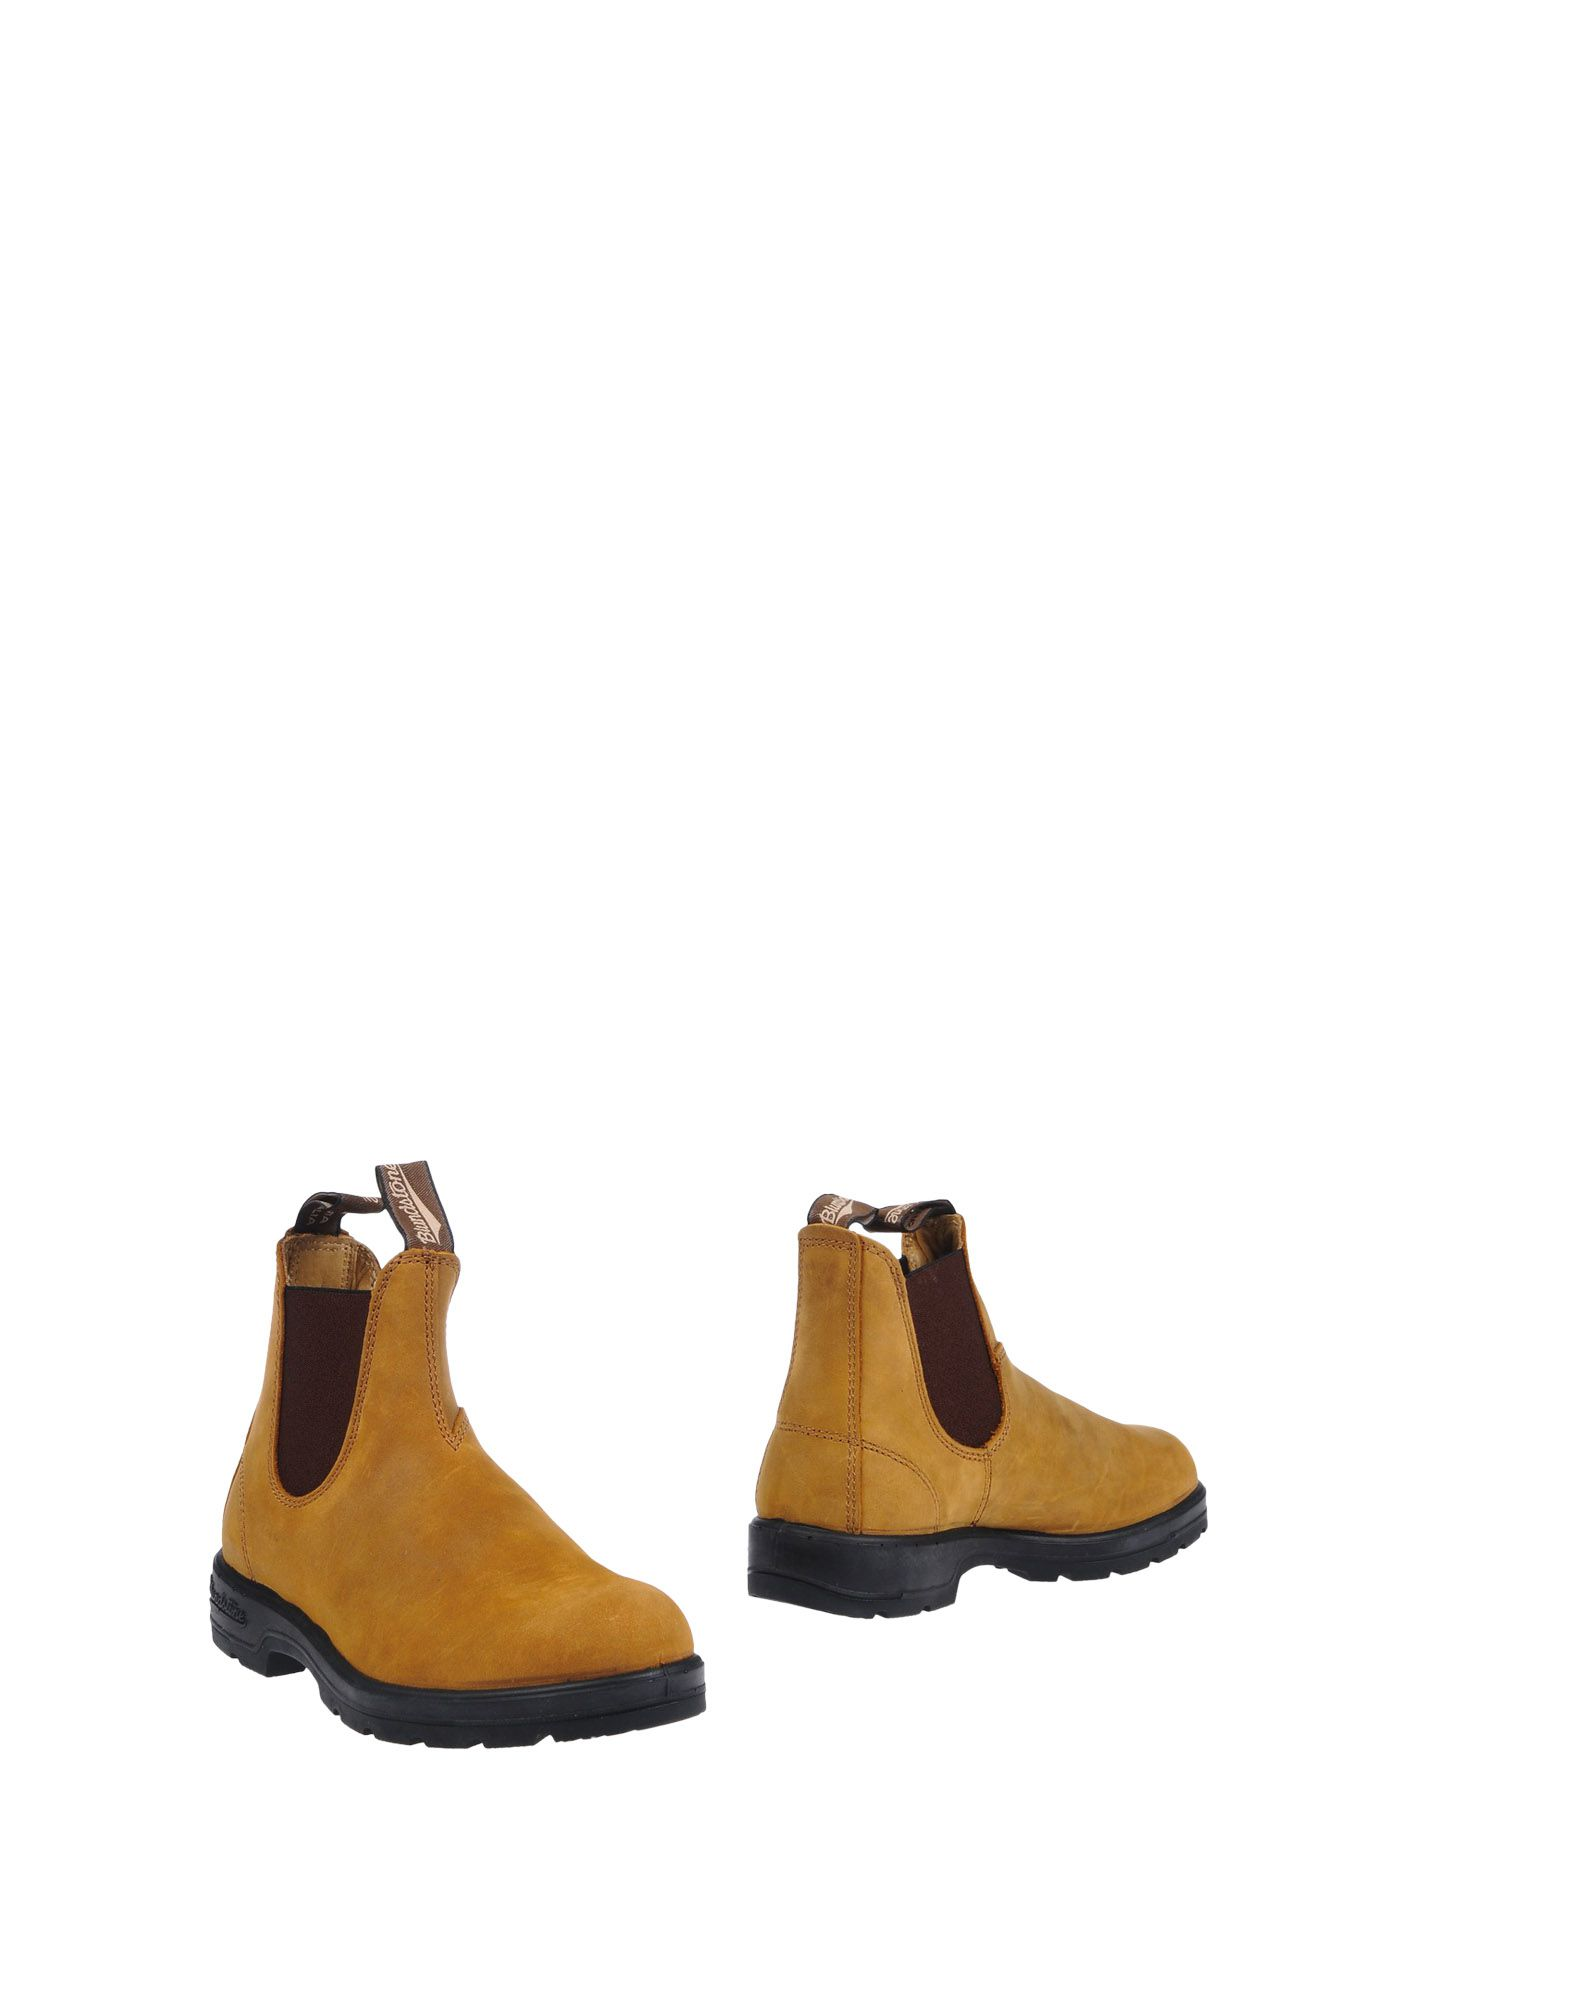 Bottine Blundstone Homme - Bottines Blundstone  Camel Mode pas cher et belle